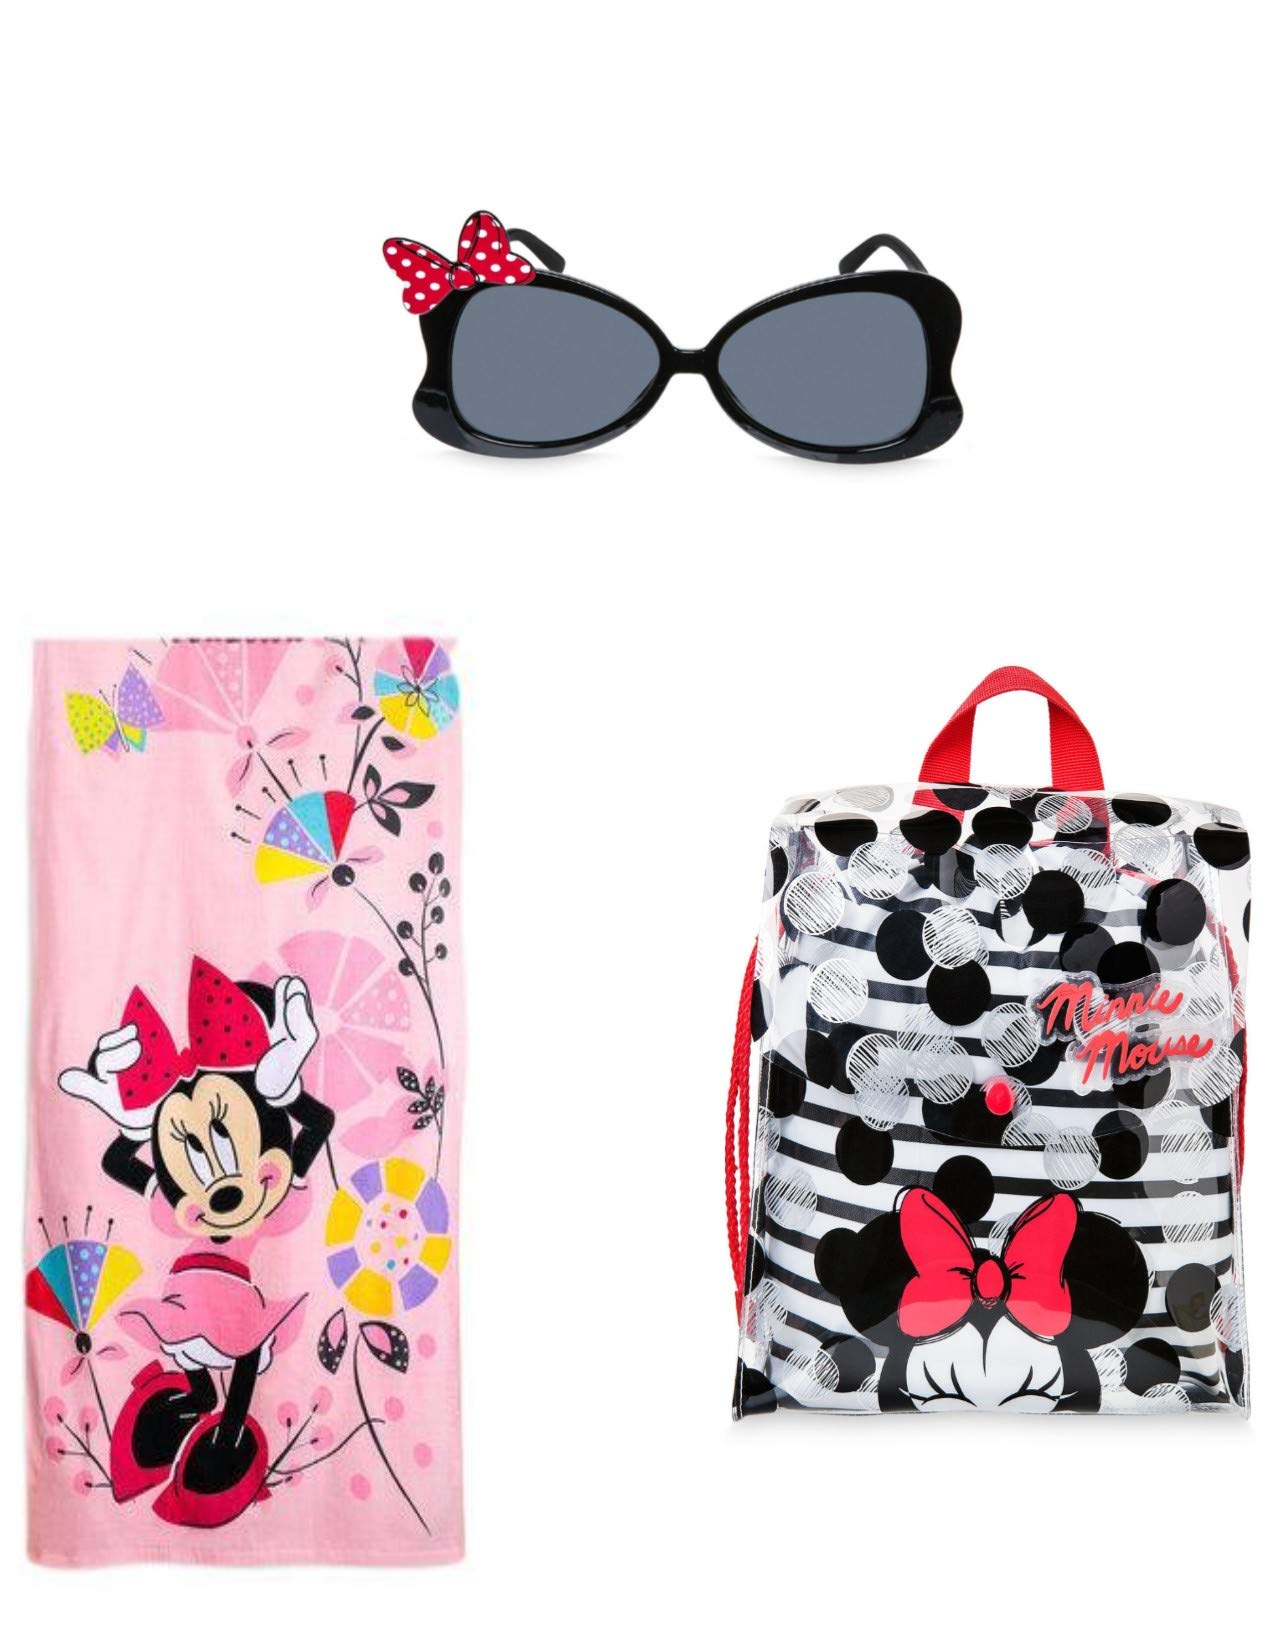 Minnie Beach Towel Swim Bag and Sunglass Set Little Girls Tote